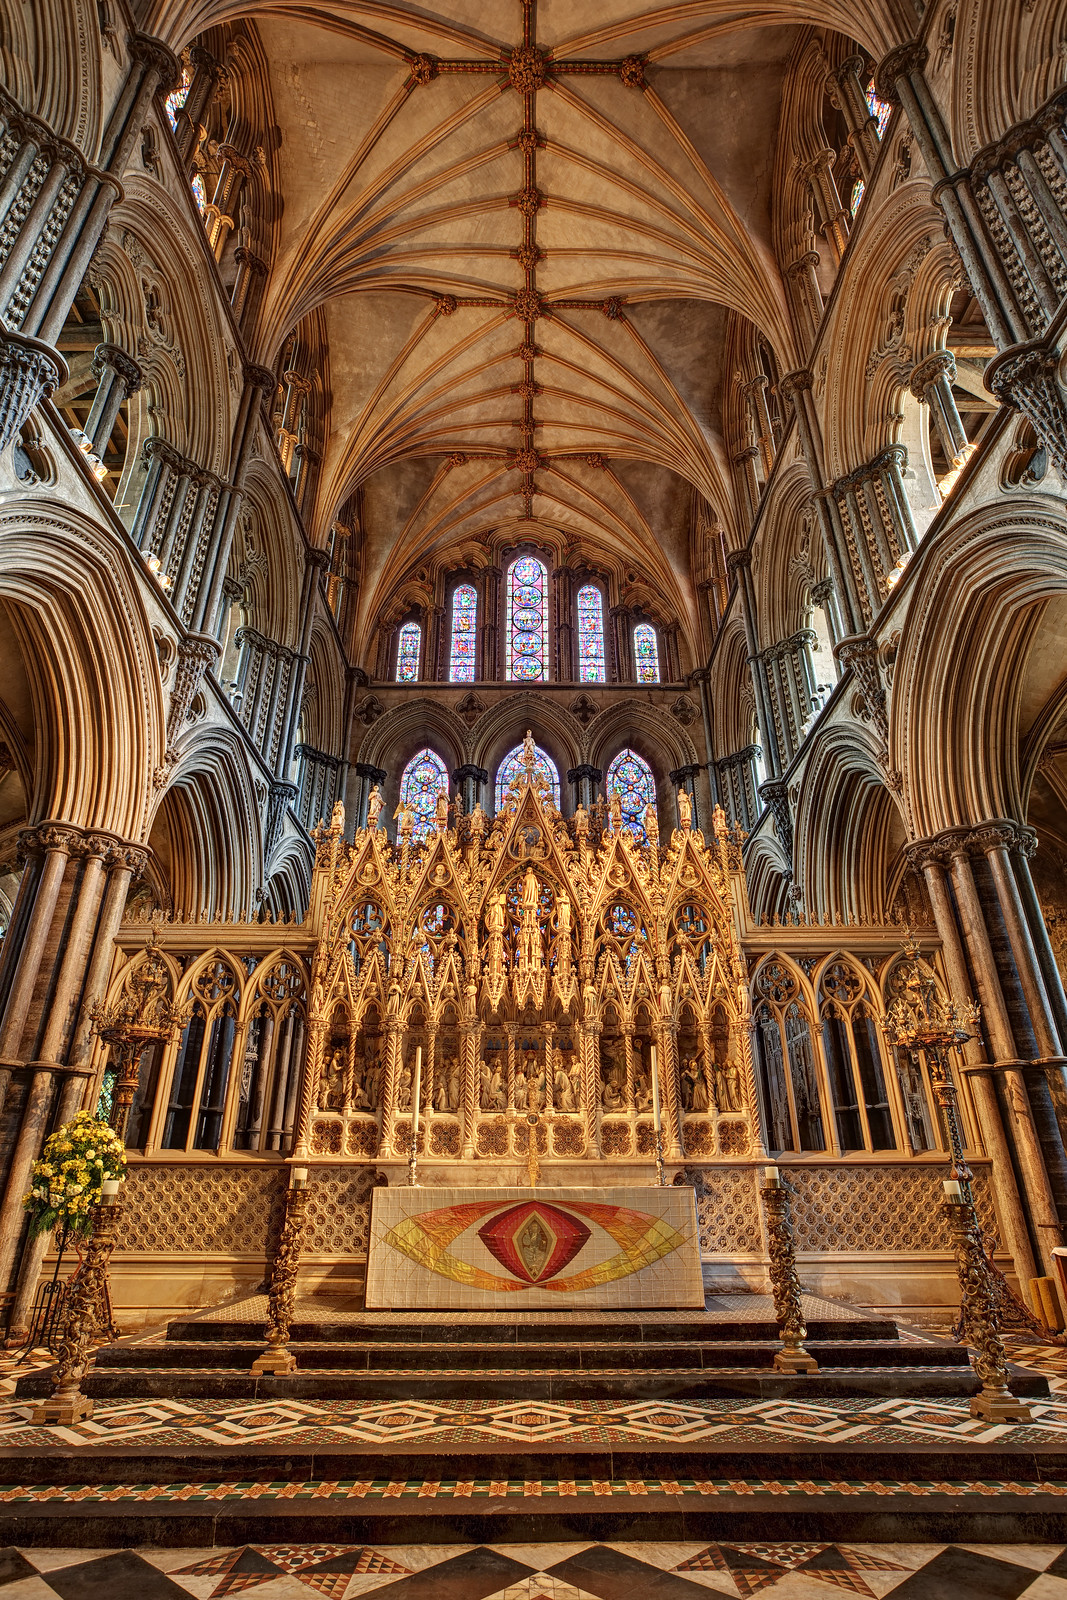 High Altar of Ely Cathedral